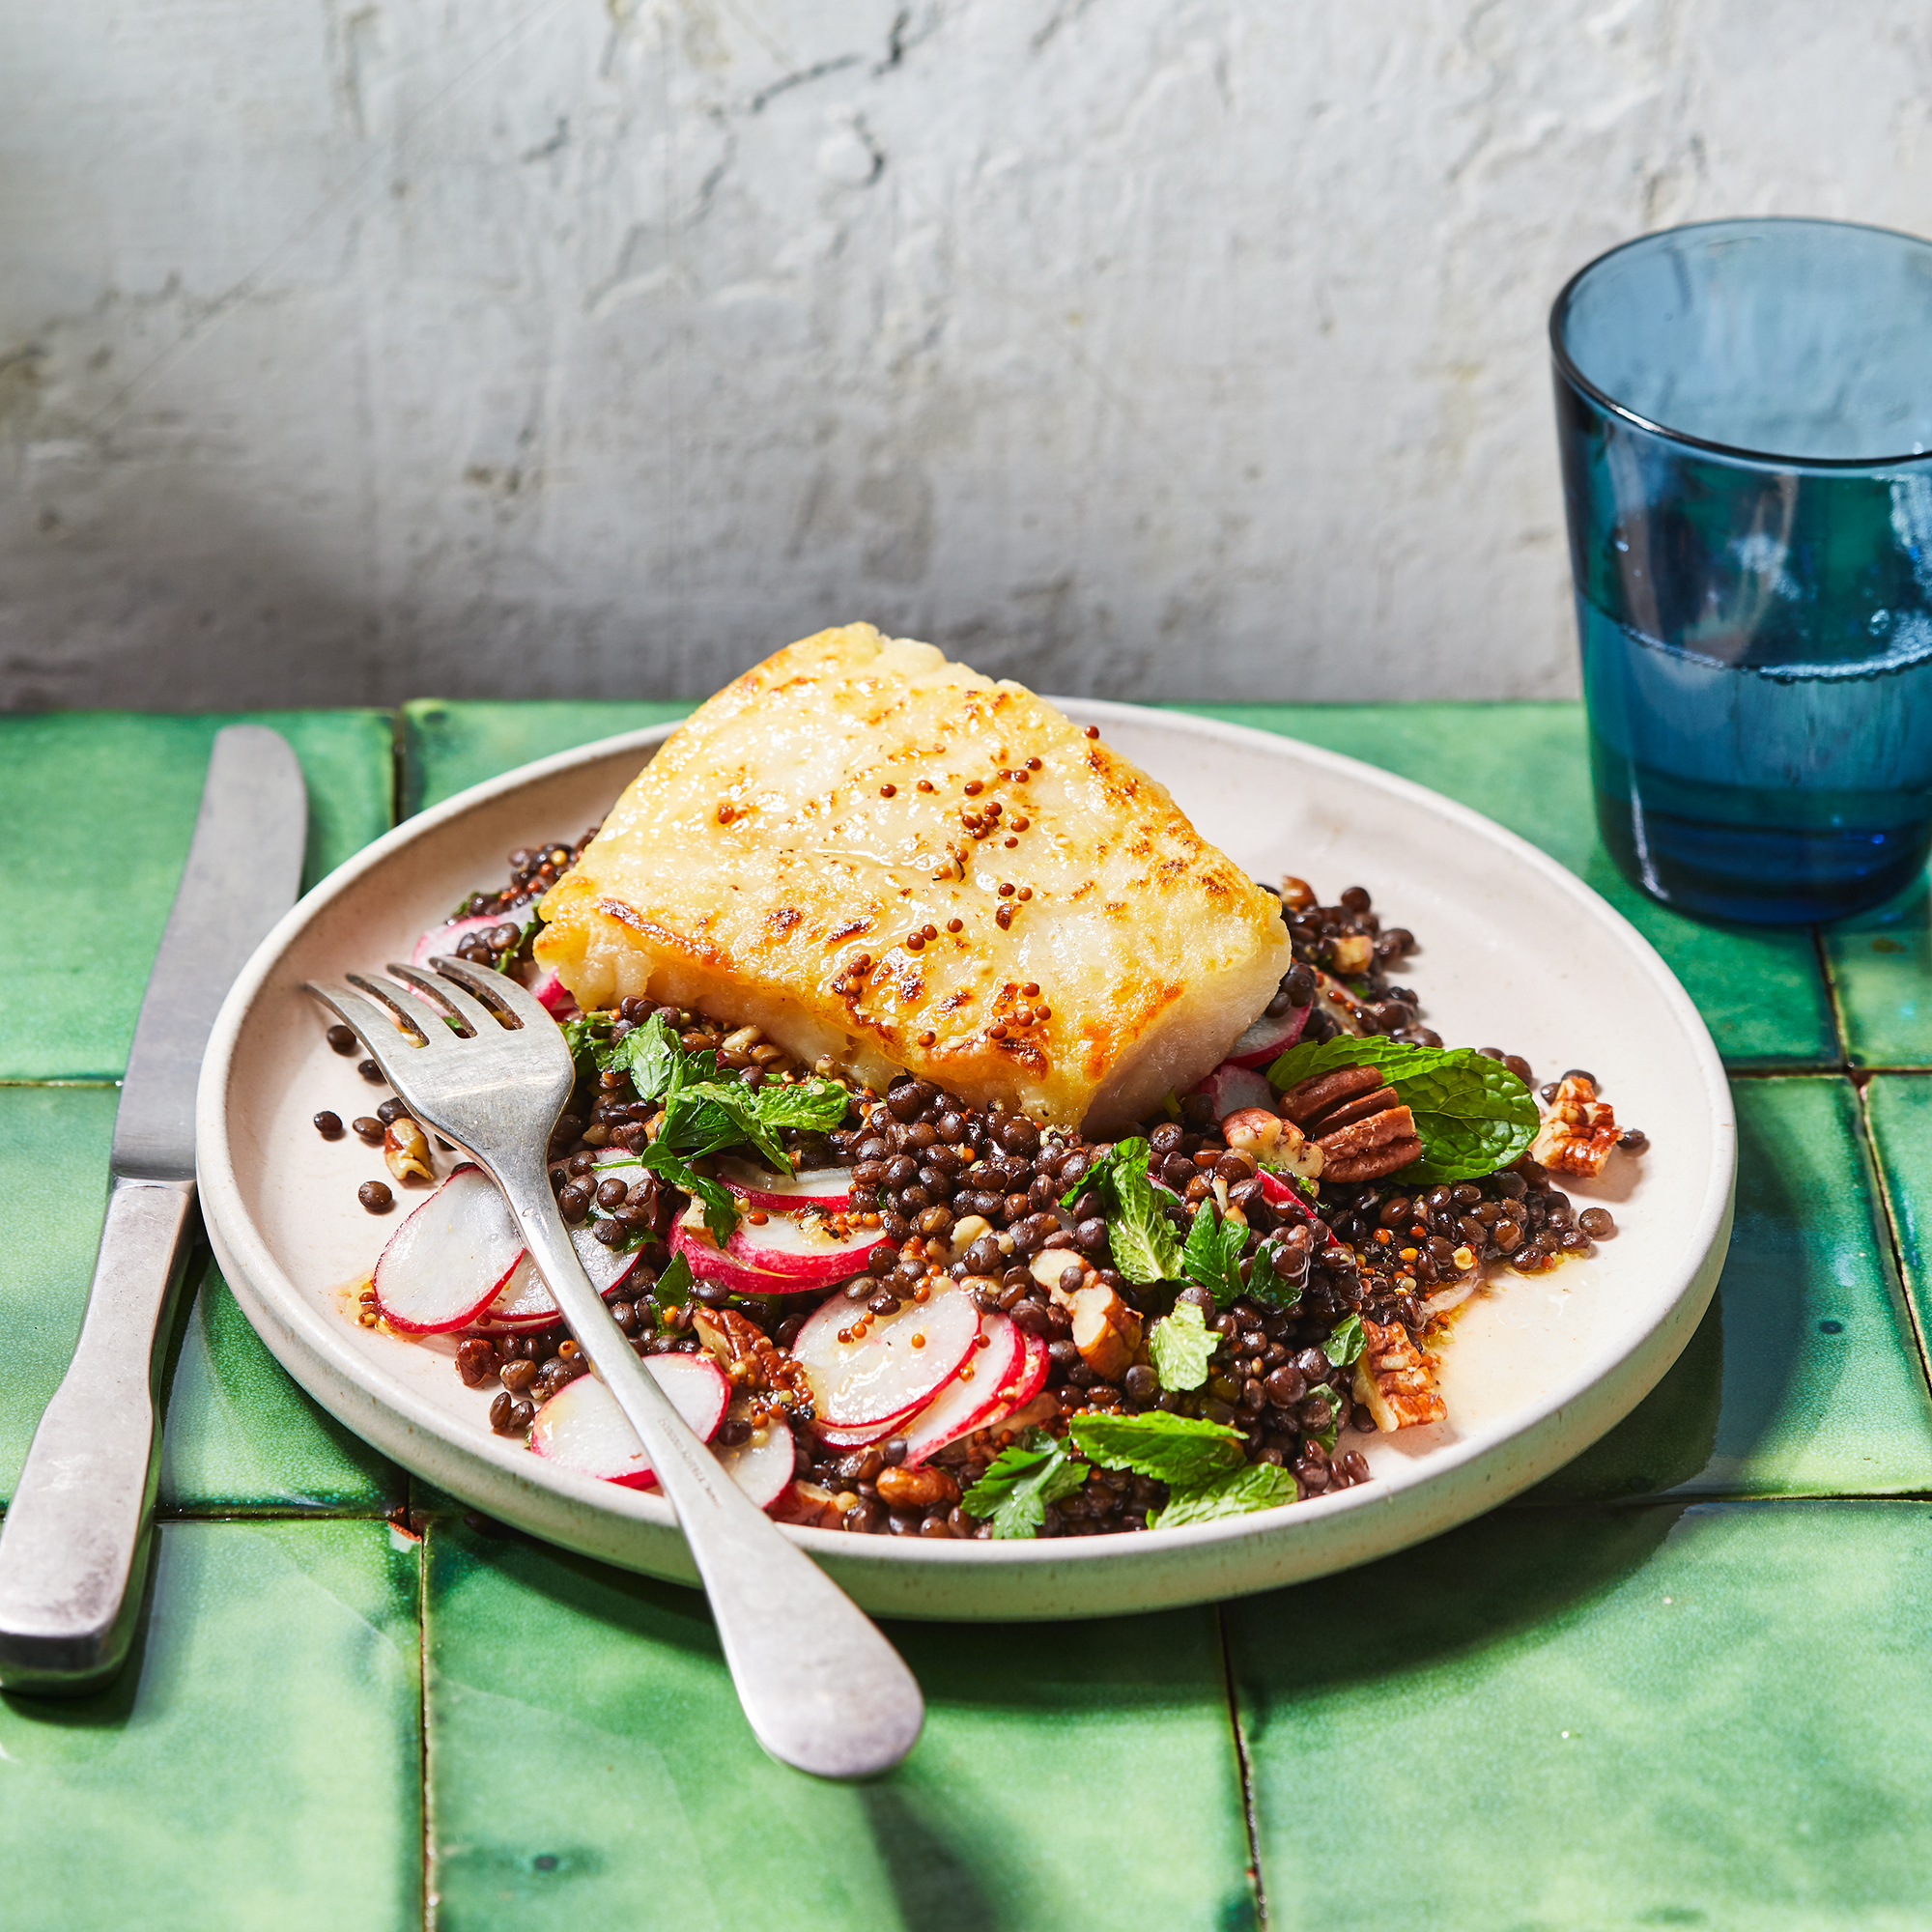 Seared Cod with Radish & Lentil Salad